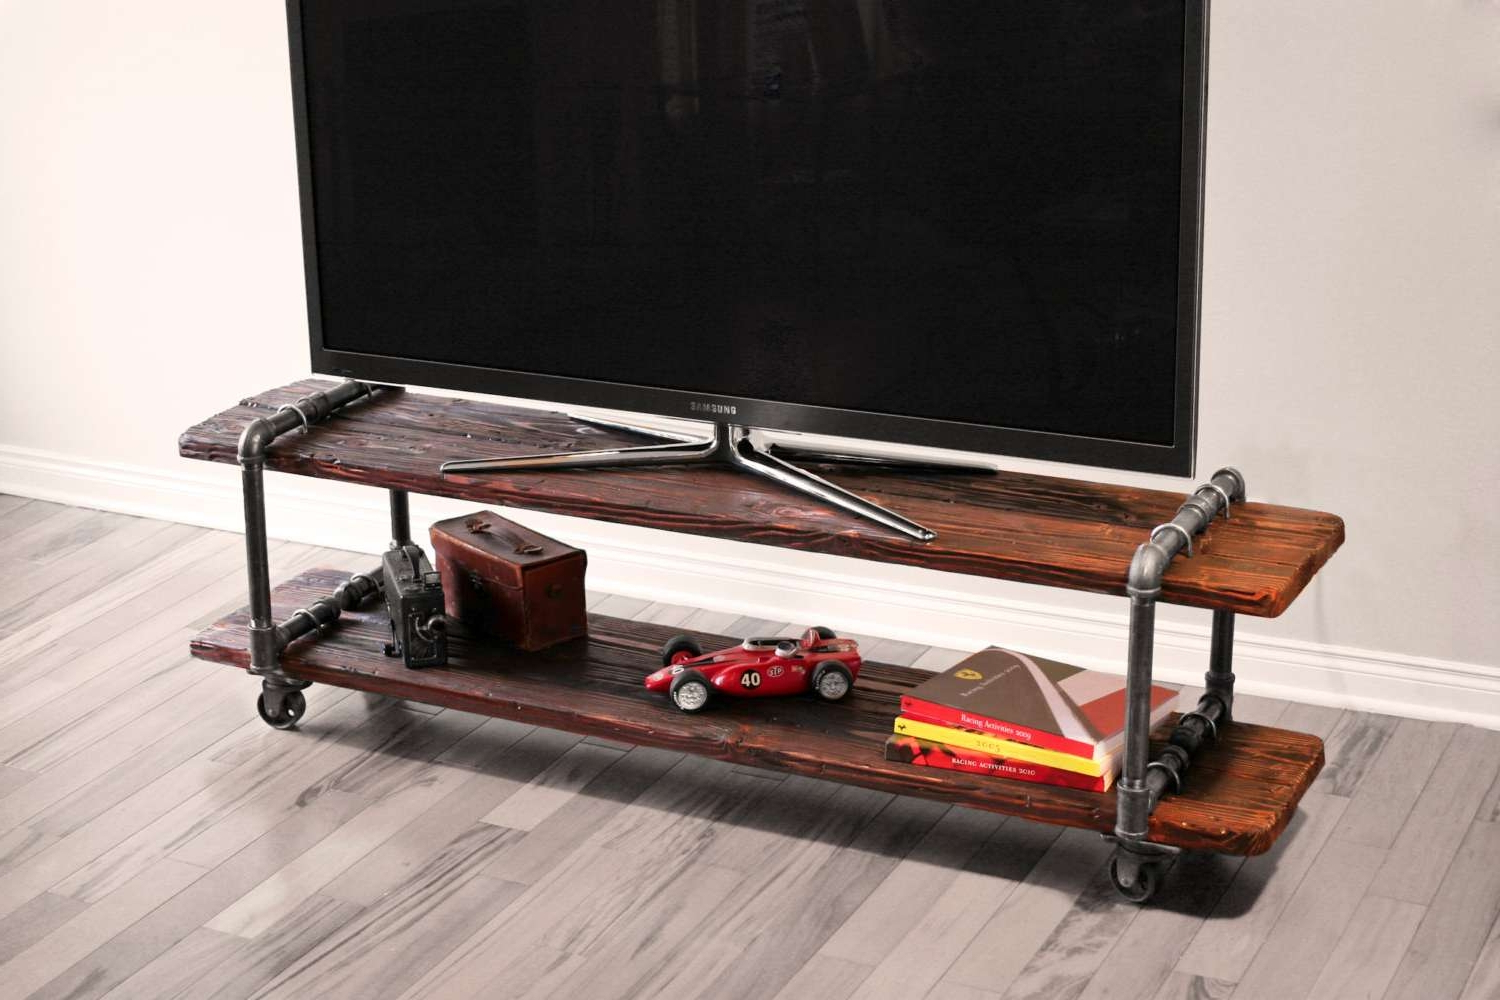 Wooden Tv Stand With Wheels Throughout Favorite Mean Work Woodworking Projects Tv Stand Diy Plans Homemade Wood (View 19 of 20)